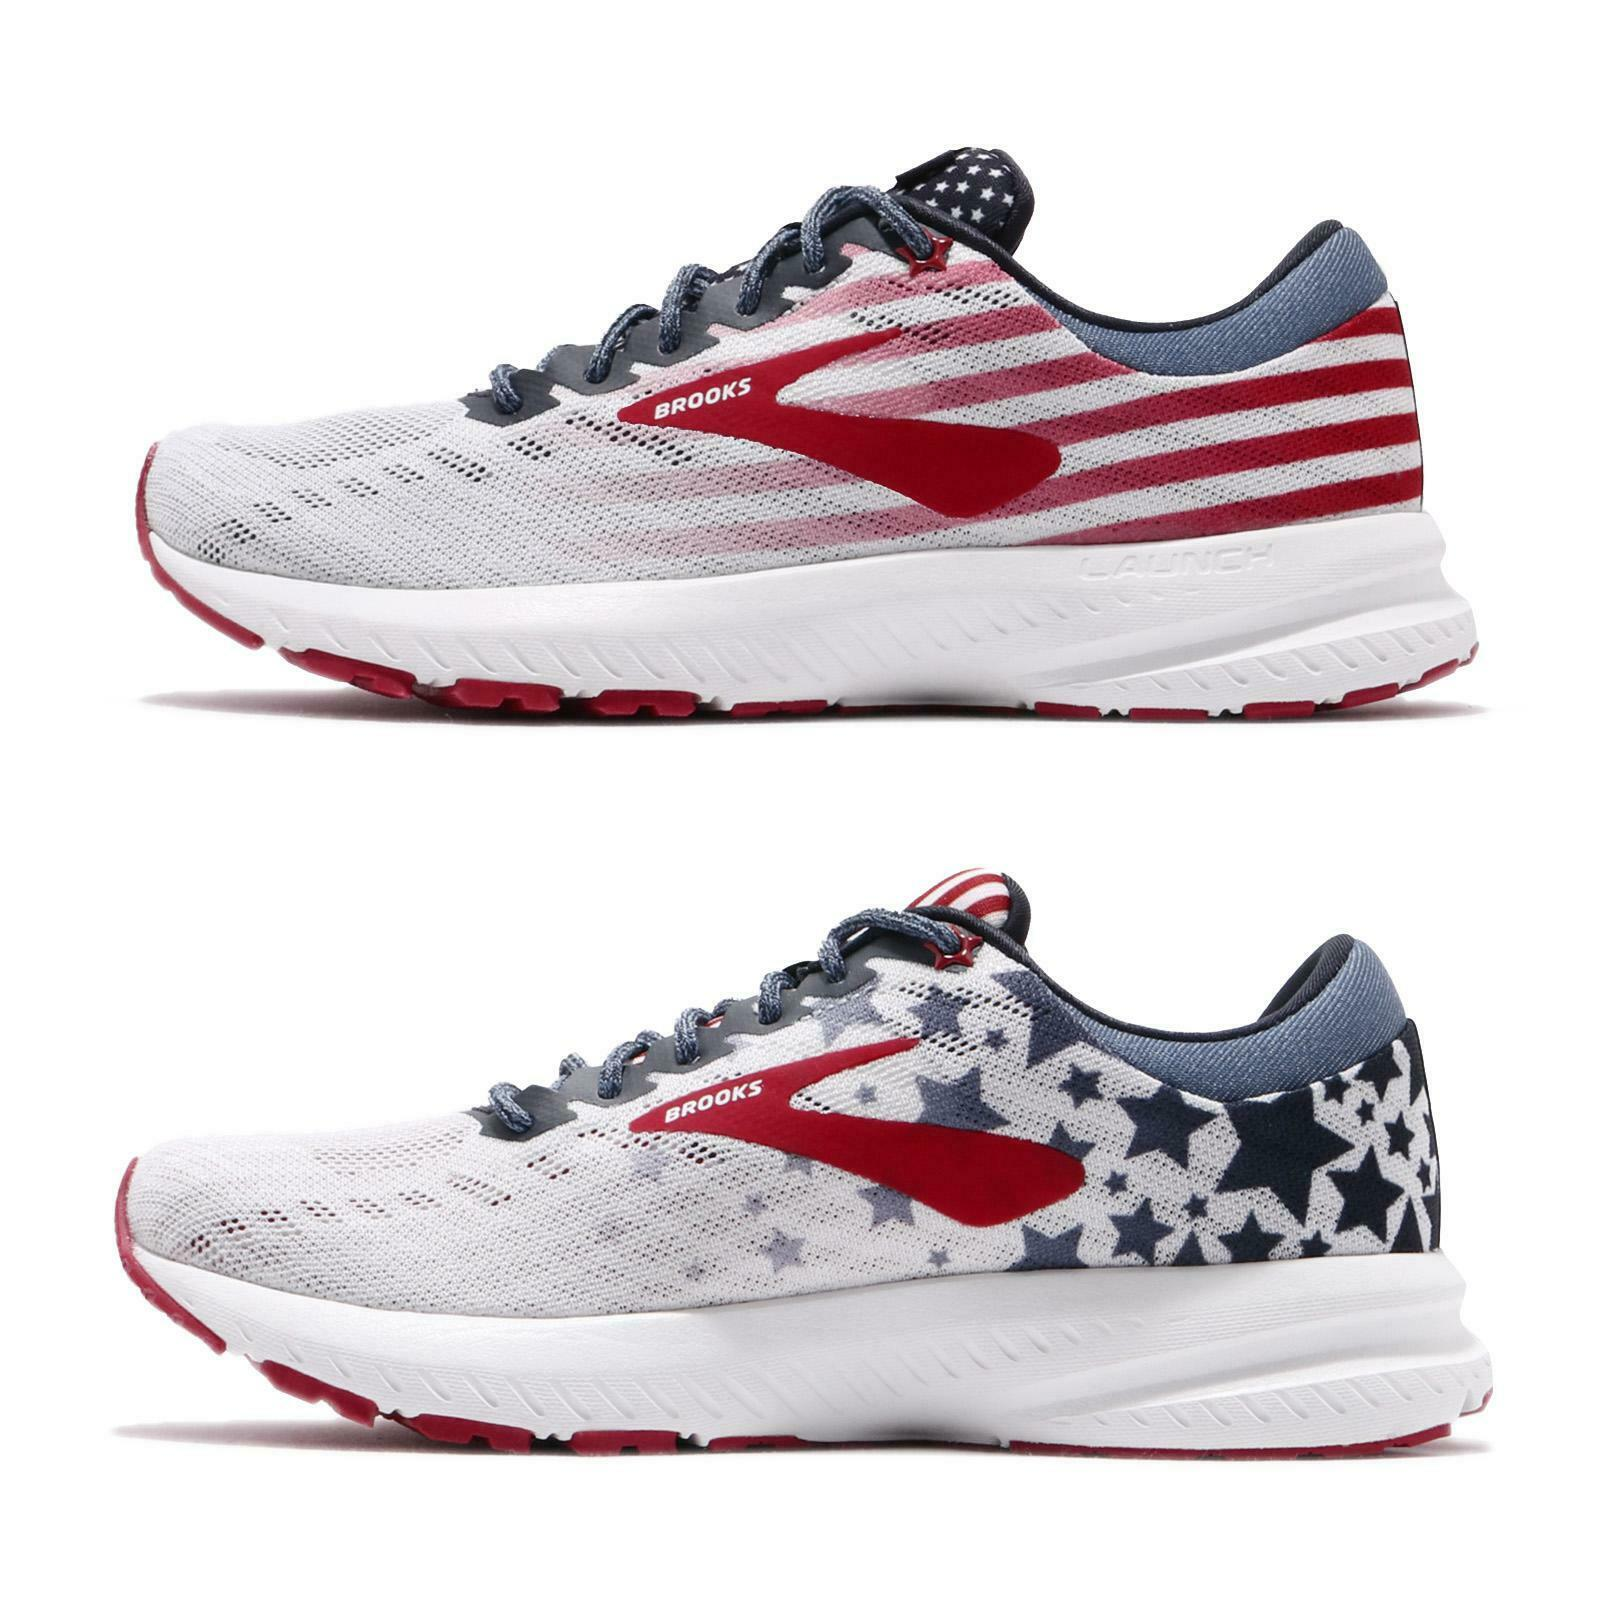 Brooks Launch 6 Go USA Independence Day Edition rouge femmes FonctionneHommest chaussures 1202851 B